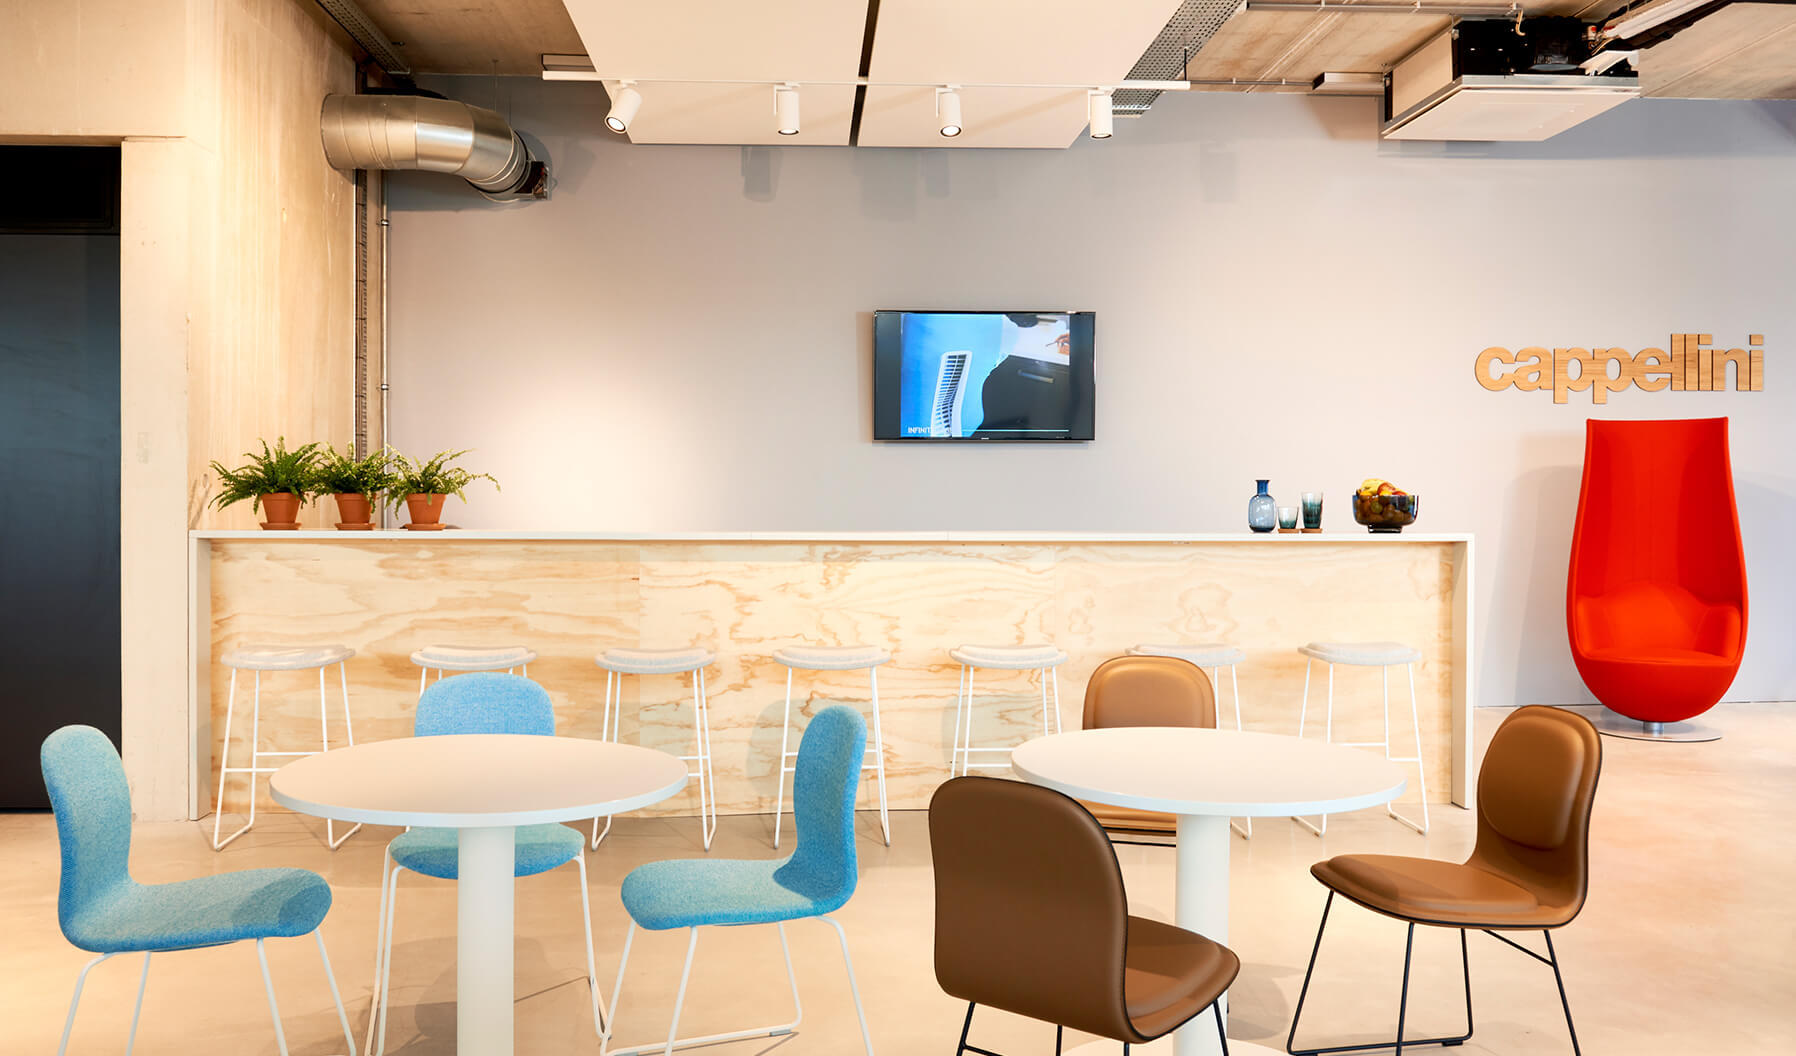 The Cappellini café provides a stylish, informal atmosphere to relax over lunch or escape the work environment for a chat. Framery offers a booth for focus work or a private conversation.